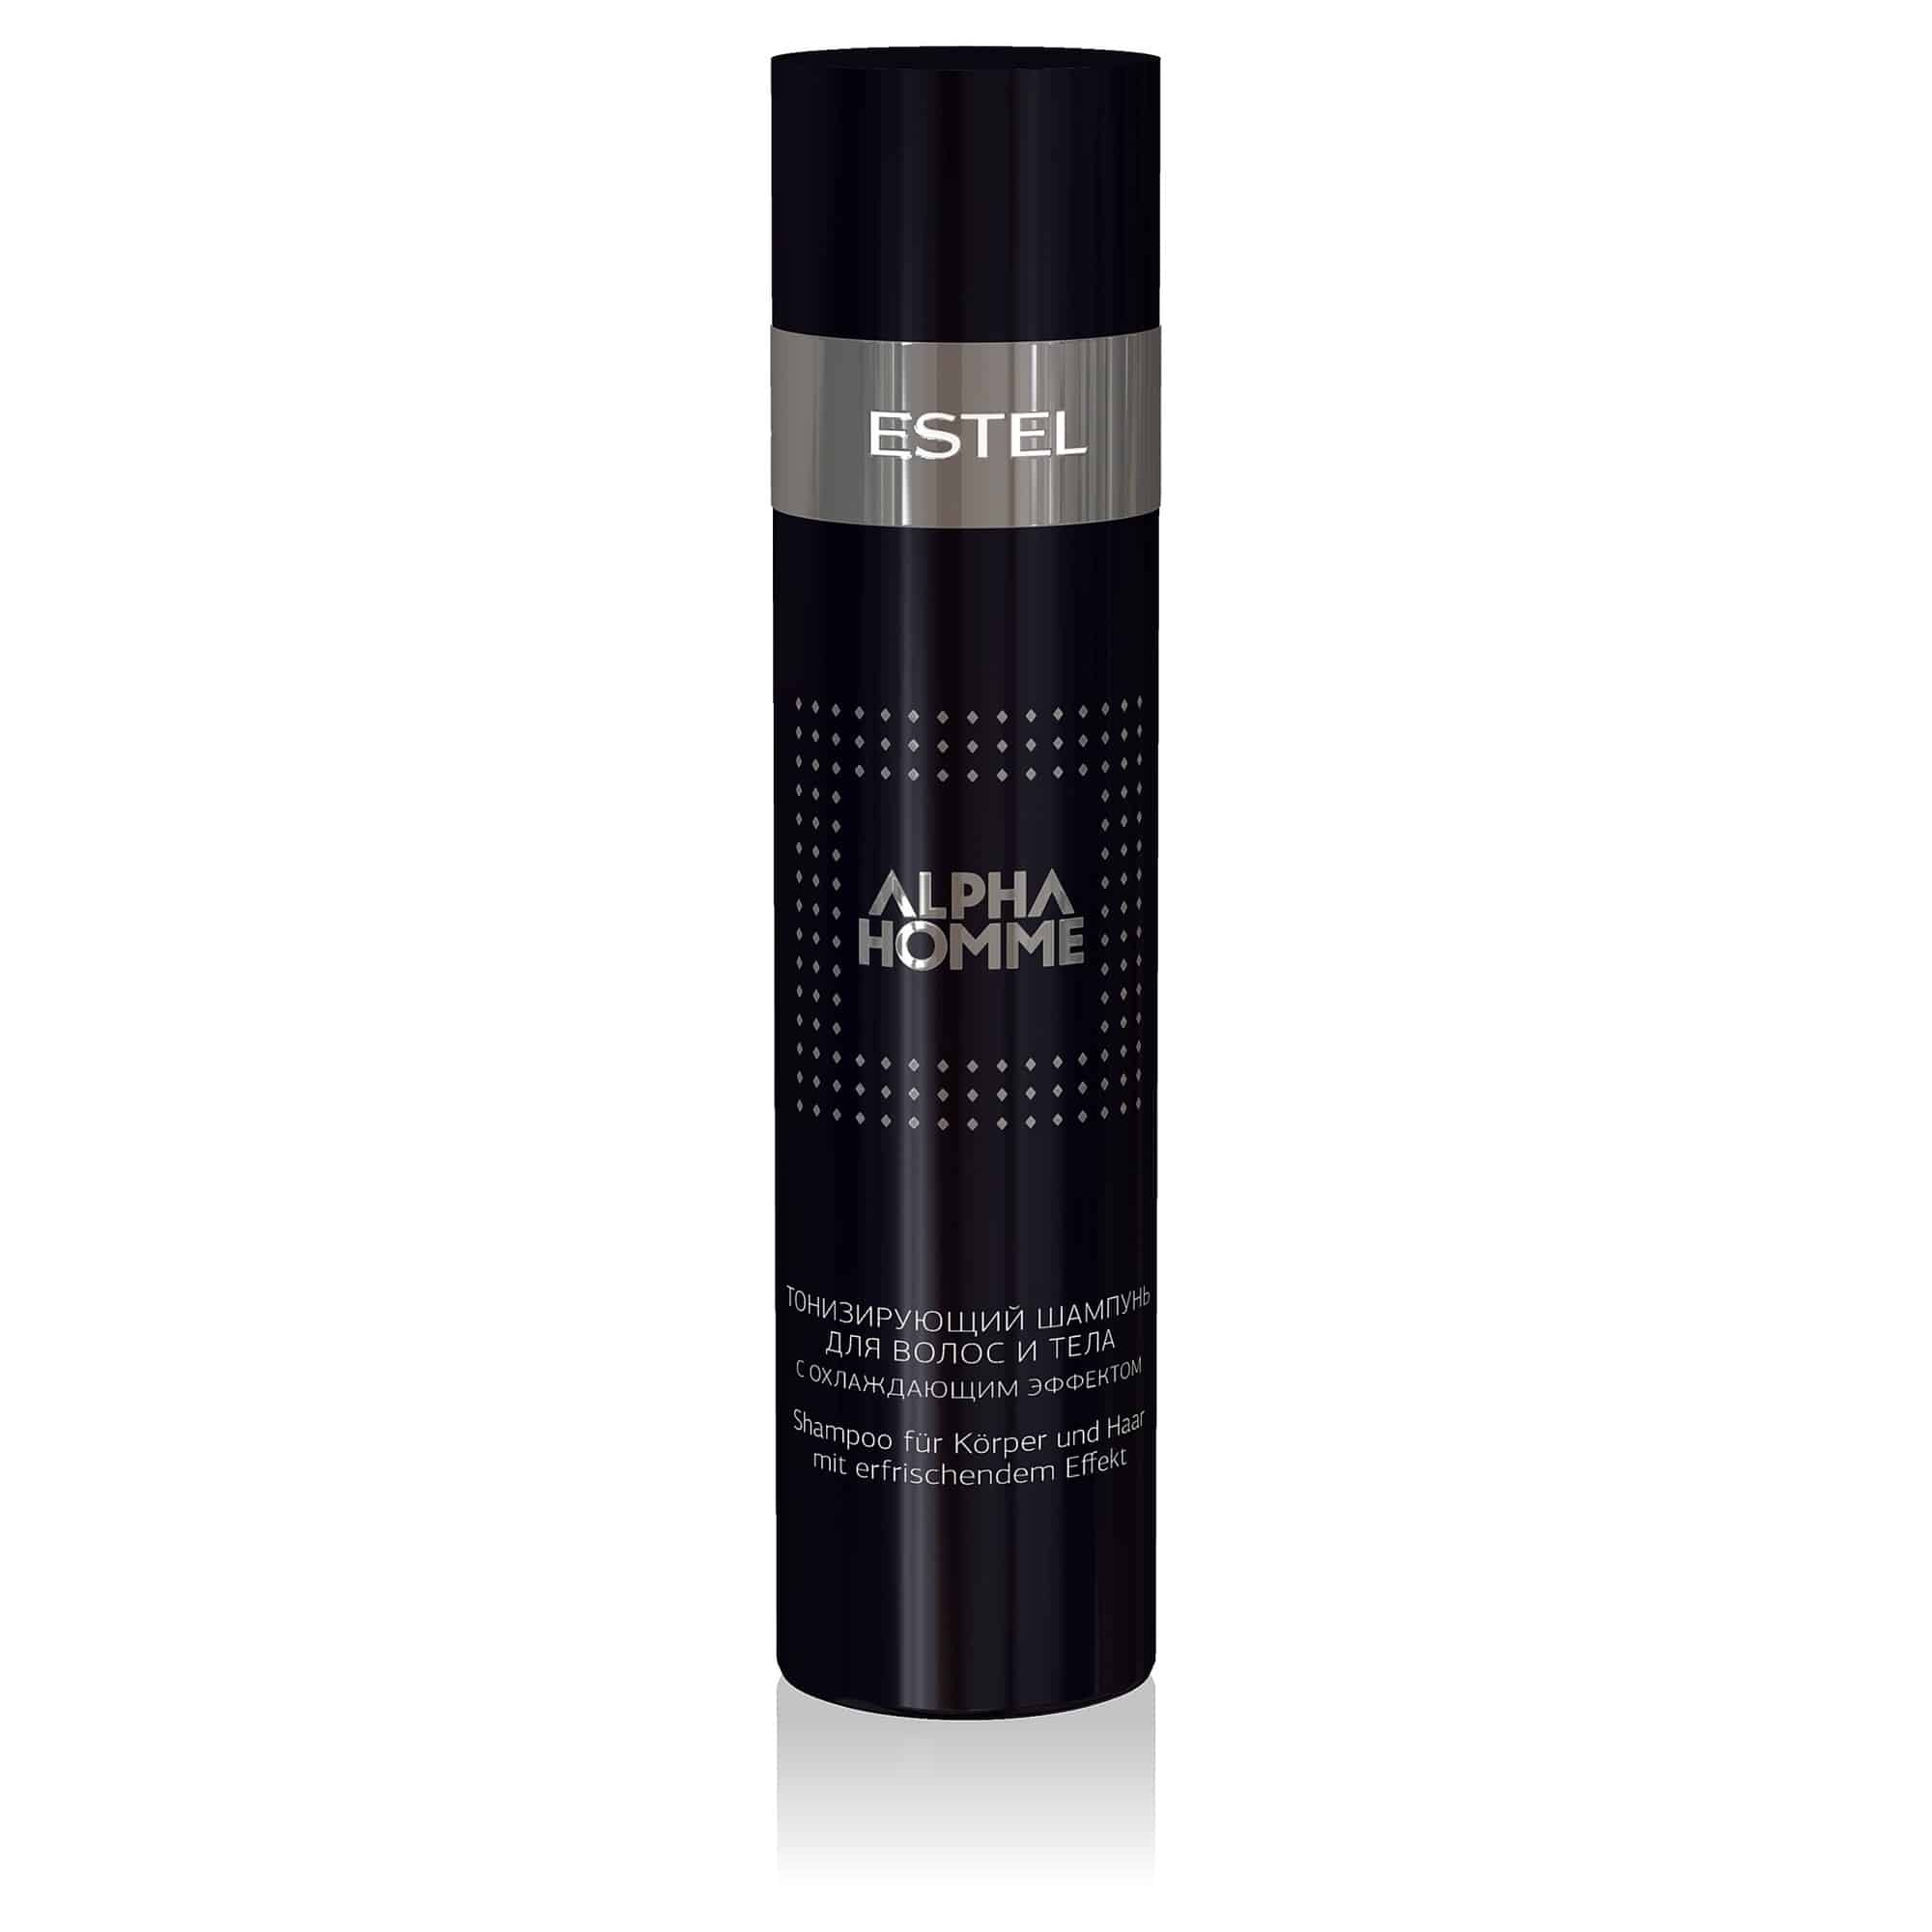 ESTEL-Pflege-ALPHA-HOMME-AH-1-250ml-bottle